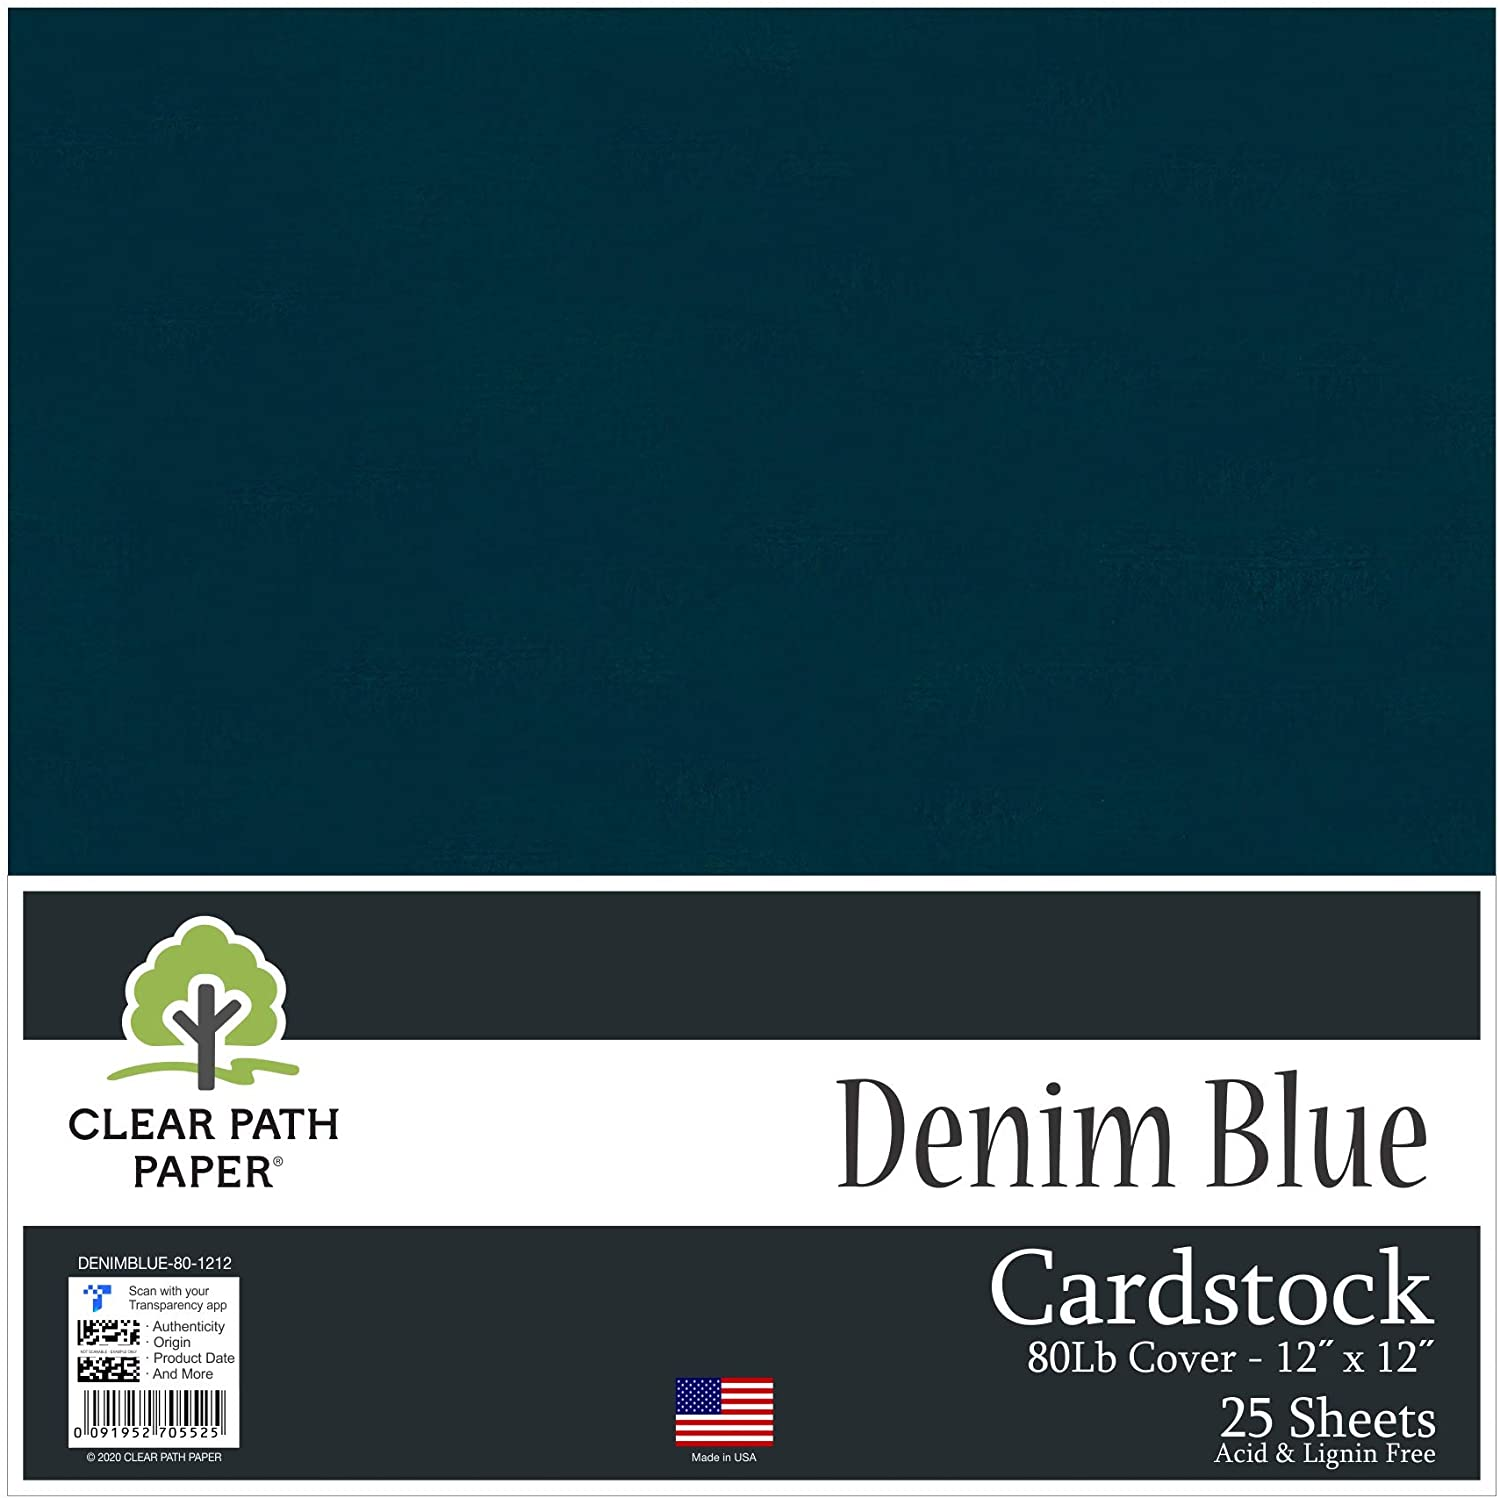 Denim Blue Cardstock - 12 x 12 inch - 80Lb Cover - 25 Sheets - Clear Path Paper